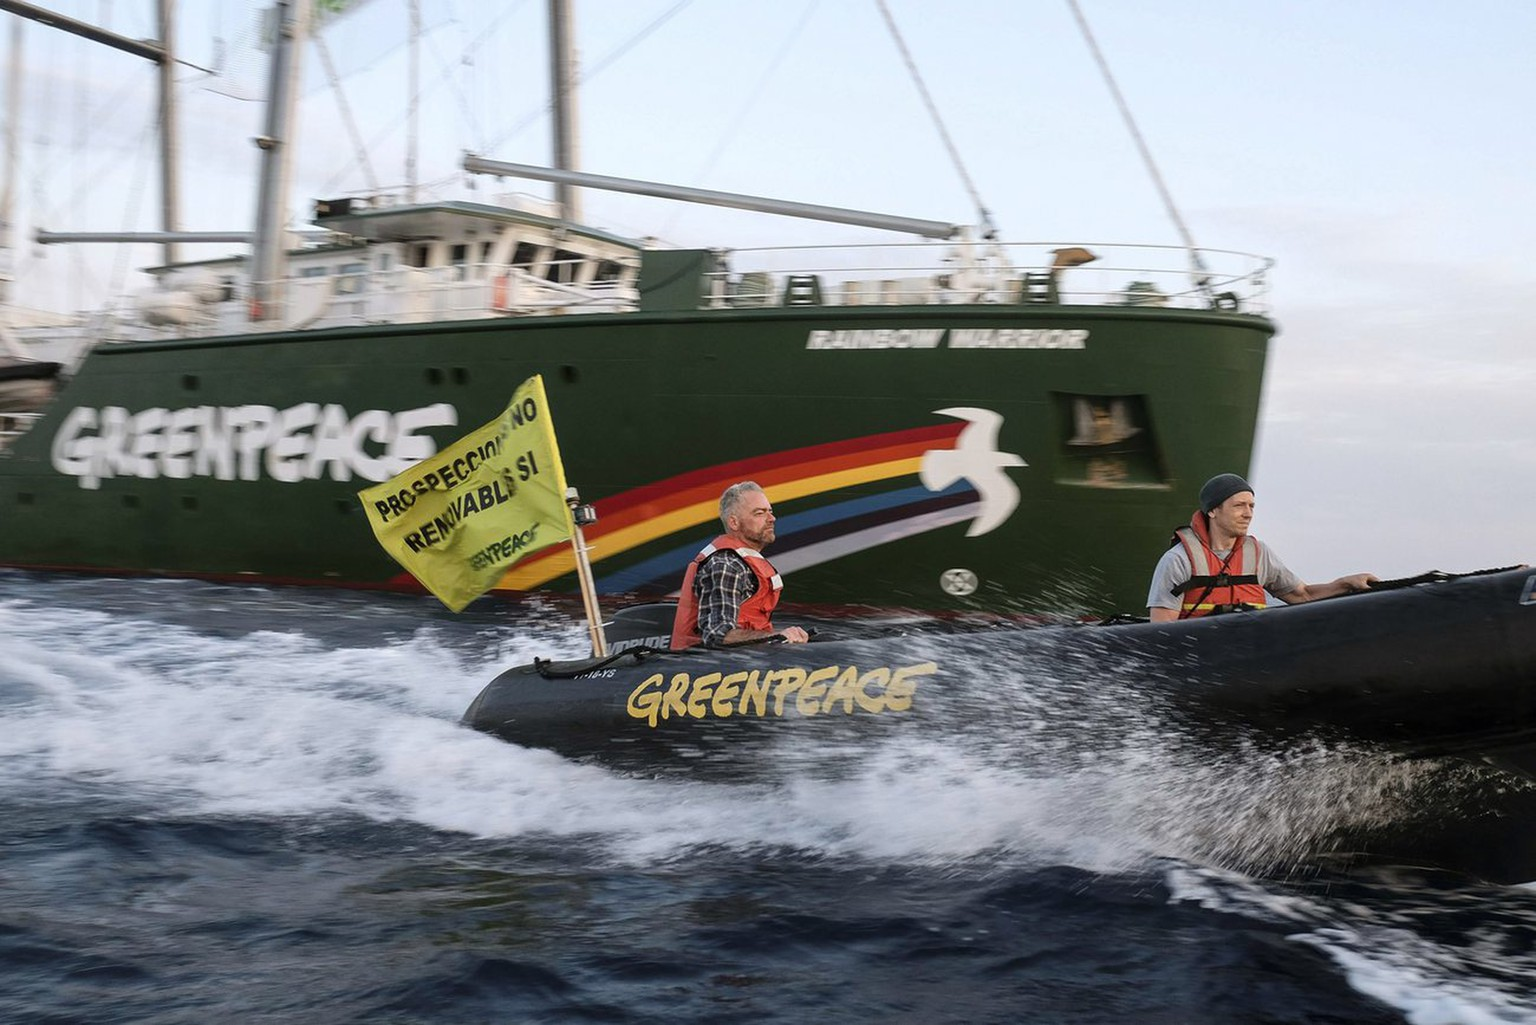 epa04249397 A handout picture released by Greenpeace shows Greenpeace activists at sea on board of a raft from the Rainbow Warrior ship (back) deployed at an oil retaining barrier, 100 metres off the Es Vedra small rocky island's natural reserve, south western Ibiza, eastern Spain, 11 June 2014. The action was held to raise public's awareness of planned oil drillings in Balearic Islands waters. Greenpeace activists unfoled a 144-metre banner reading 'No Oil' (unseen).  EPA/PEDRO ARMESTRE/GREENPEACE  HANDOUT EDITORIAL USE ONLY/NO SALES/NO ARCHIVES